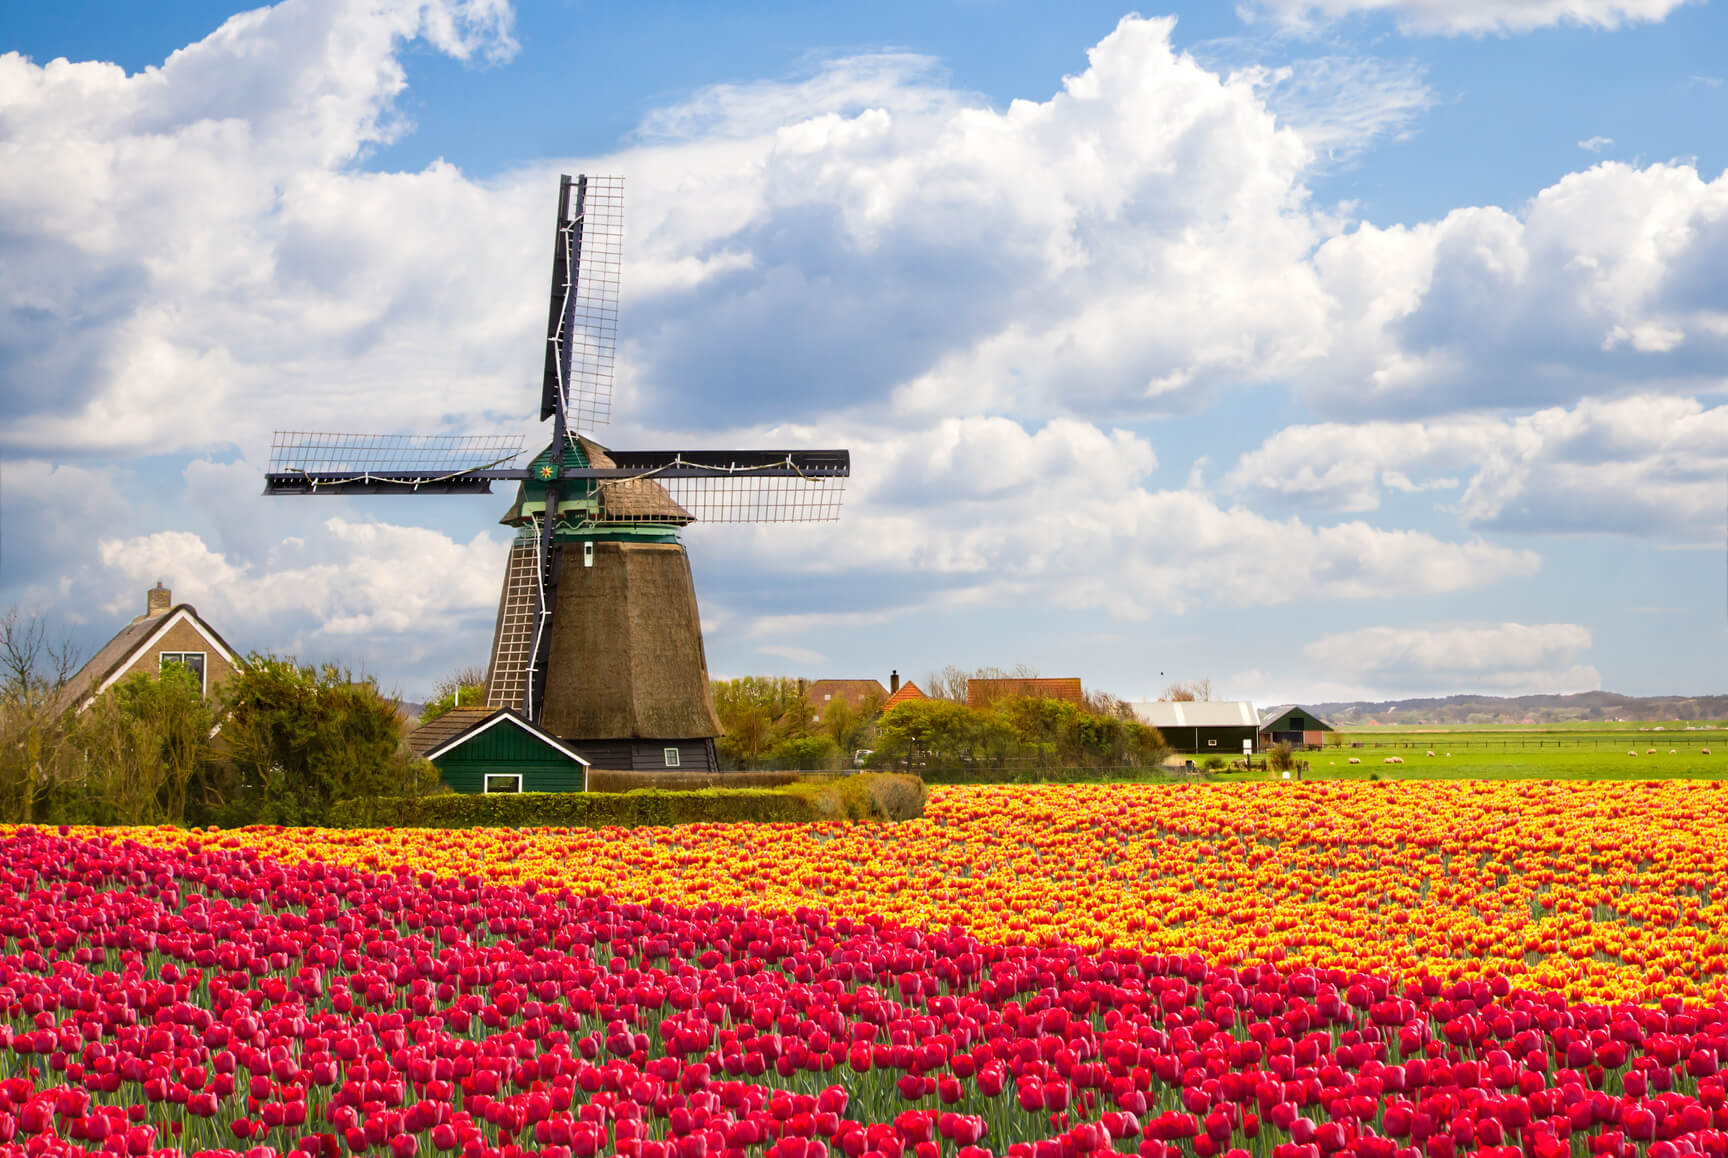 Accra, Ghana to Amsterdam, Netherlands for only $485 USD roundtrip